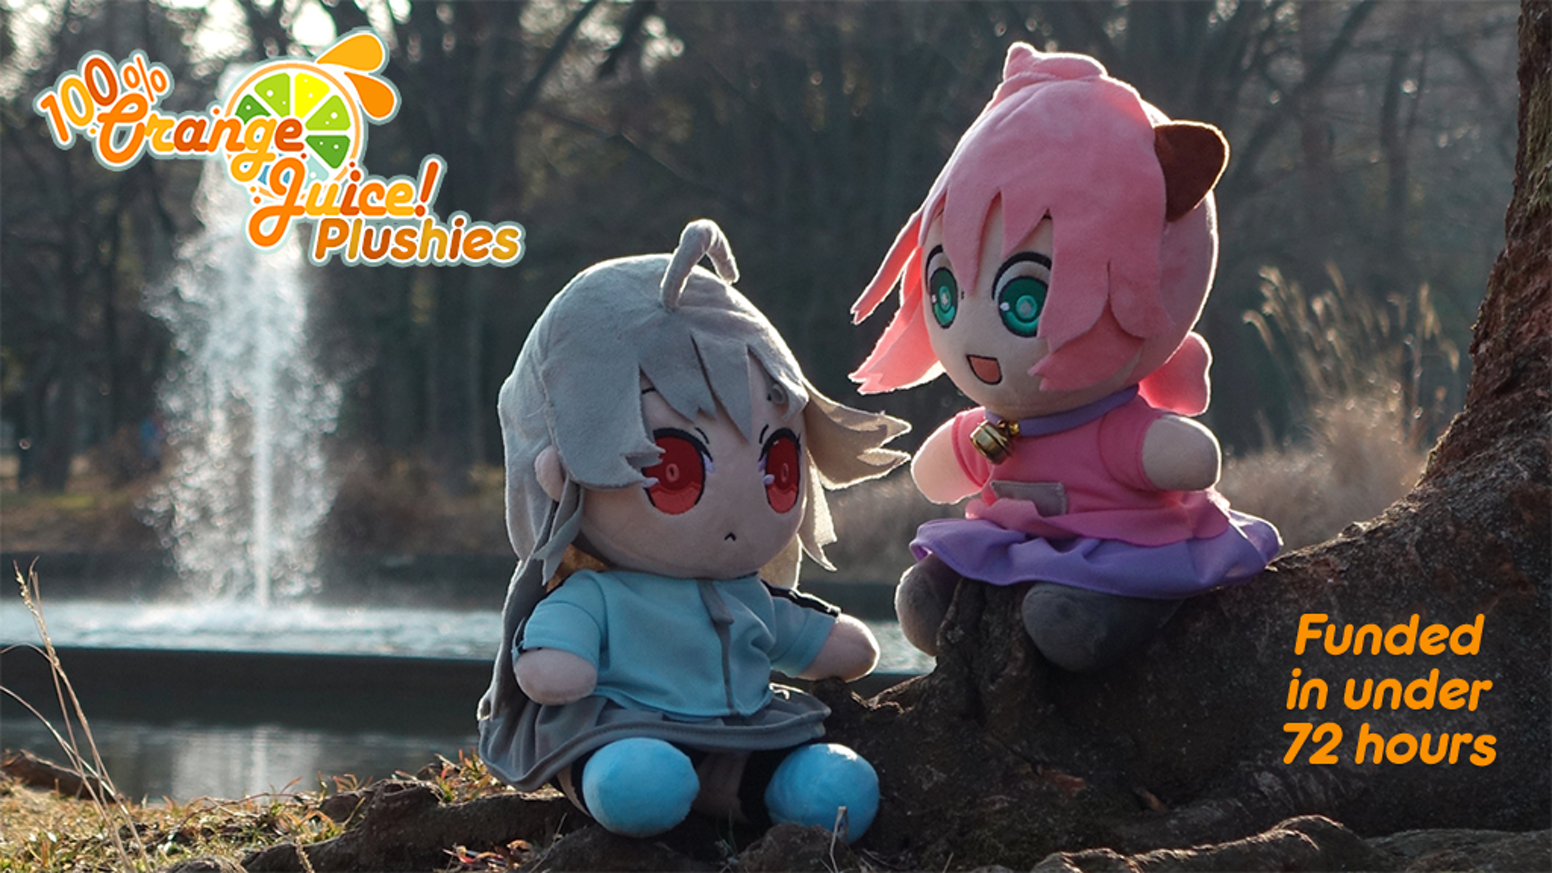 Orange Plushies are finally here! Fruitbat Factory is bringing you the cutest official Plush Toys from developer Orange Juice's games!